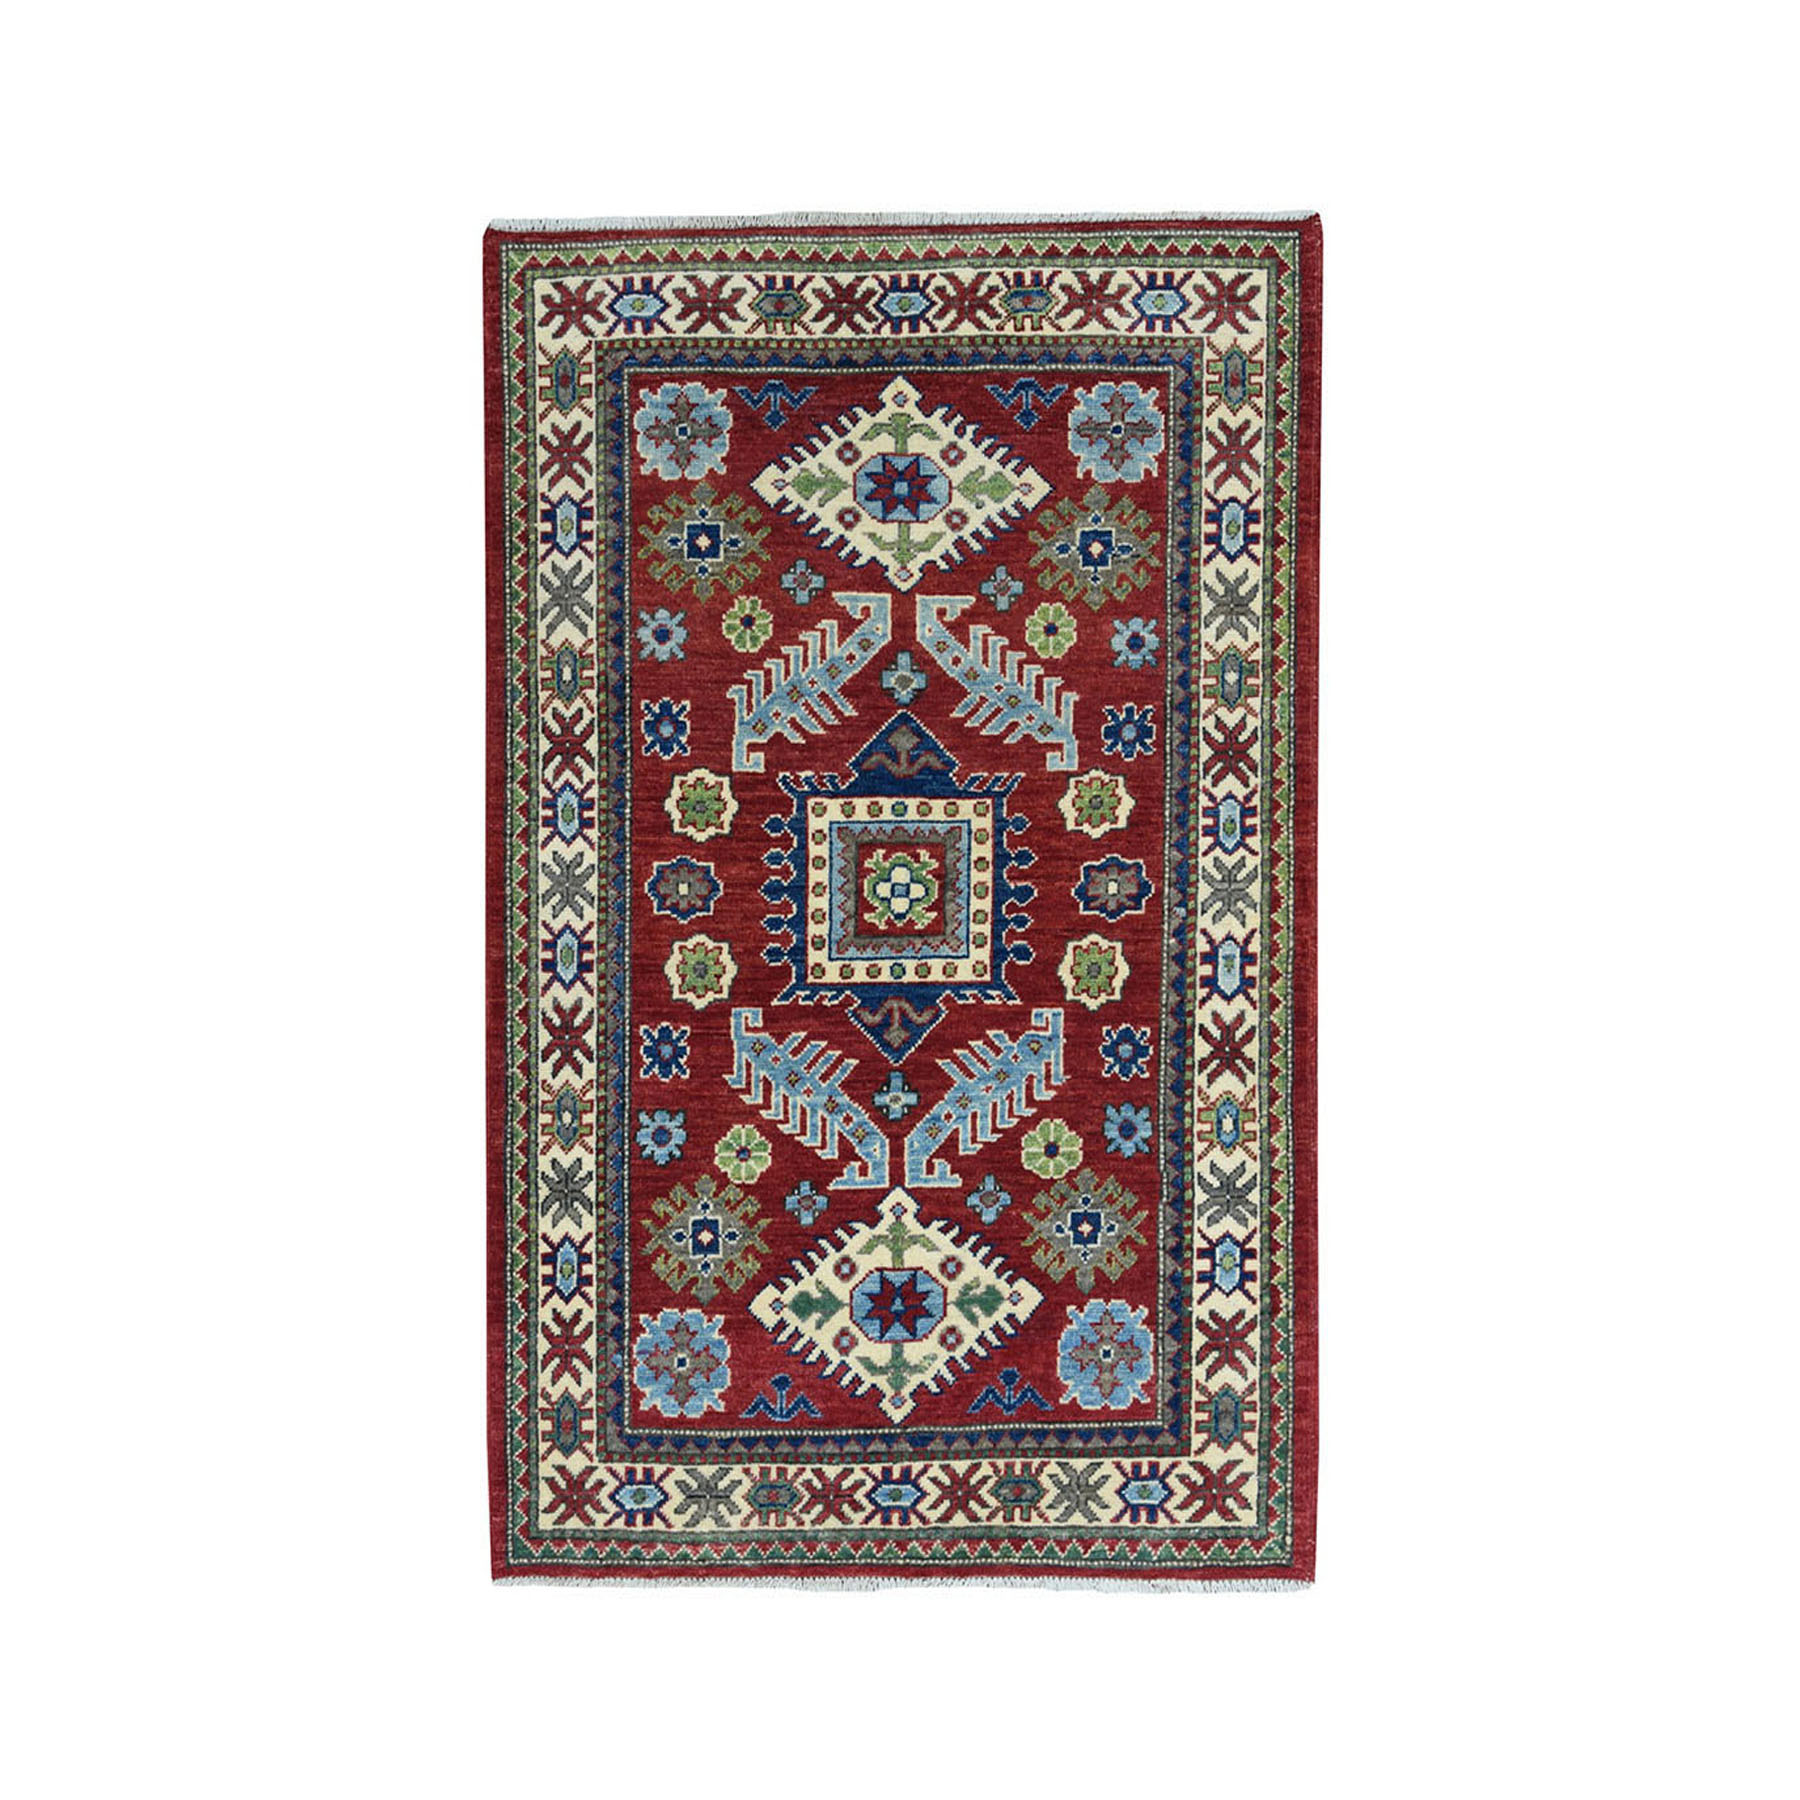 "3'2""X4'9"" Red Geometric Design Kazak Pure Wool Hand-Knotted Oriental Rug moae08db"